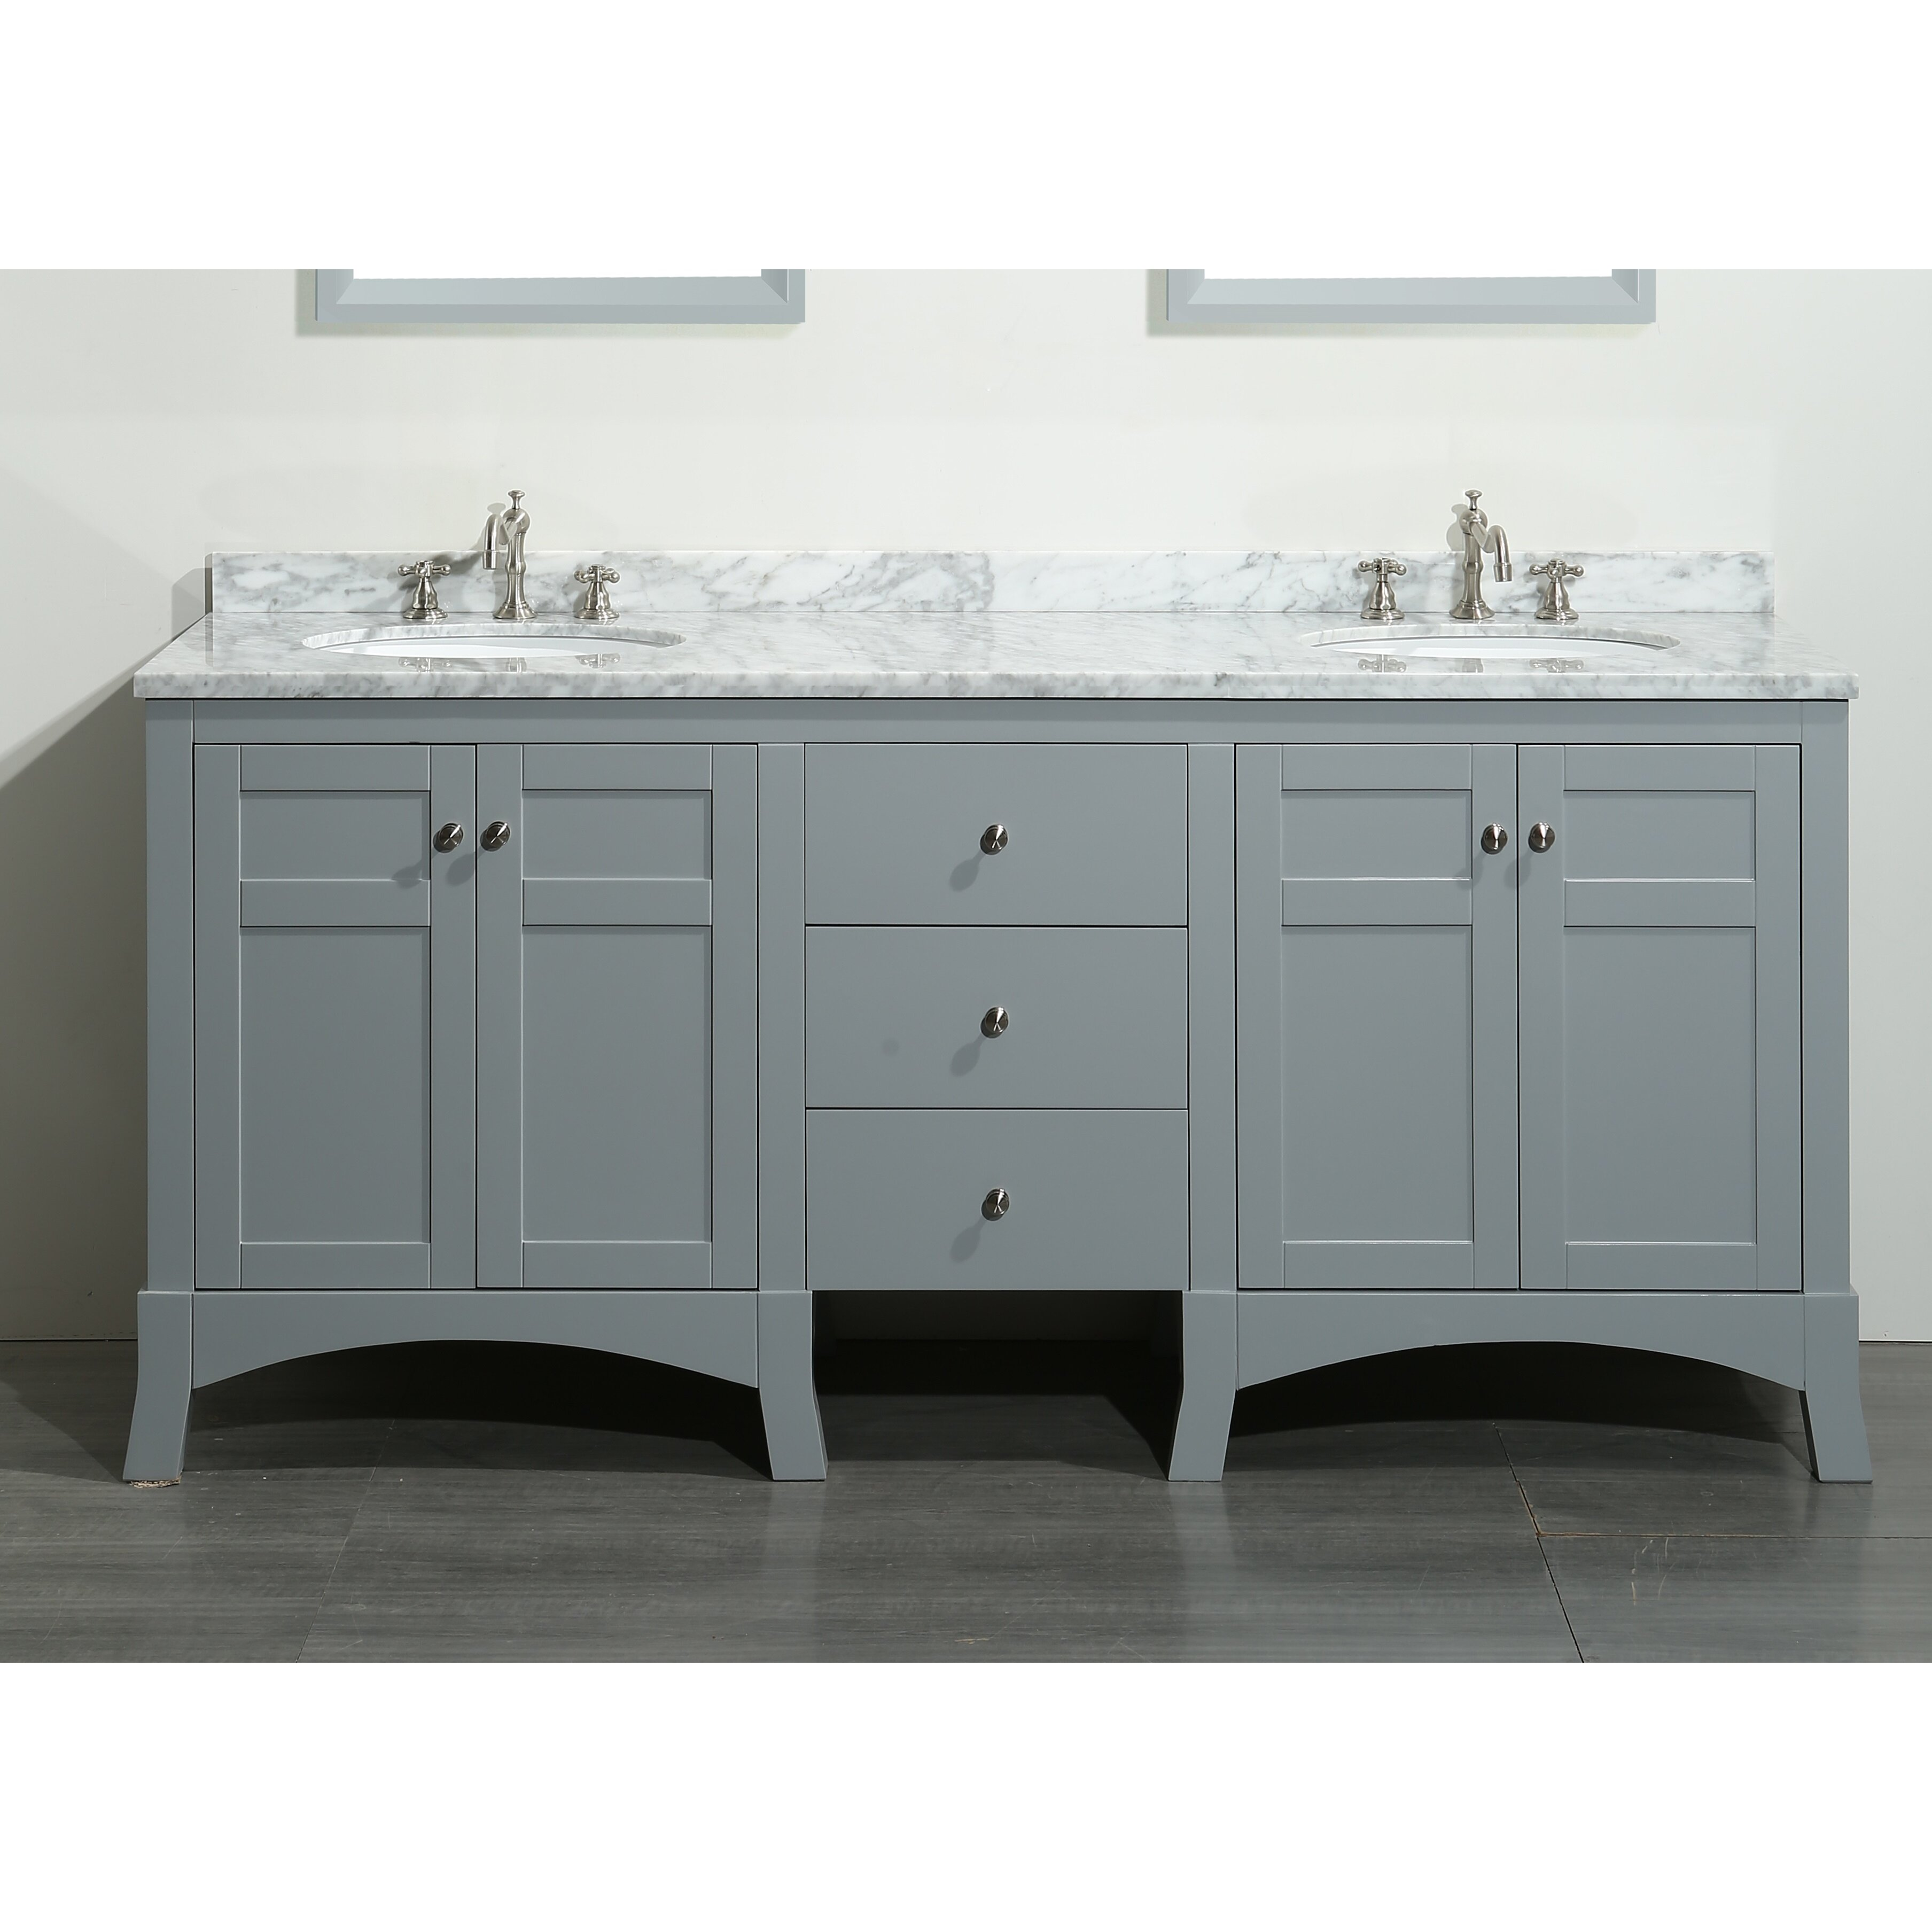 Eviva New York 72 Double Bathroom Vanity Set Reviews Wayfair